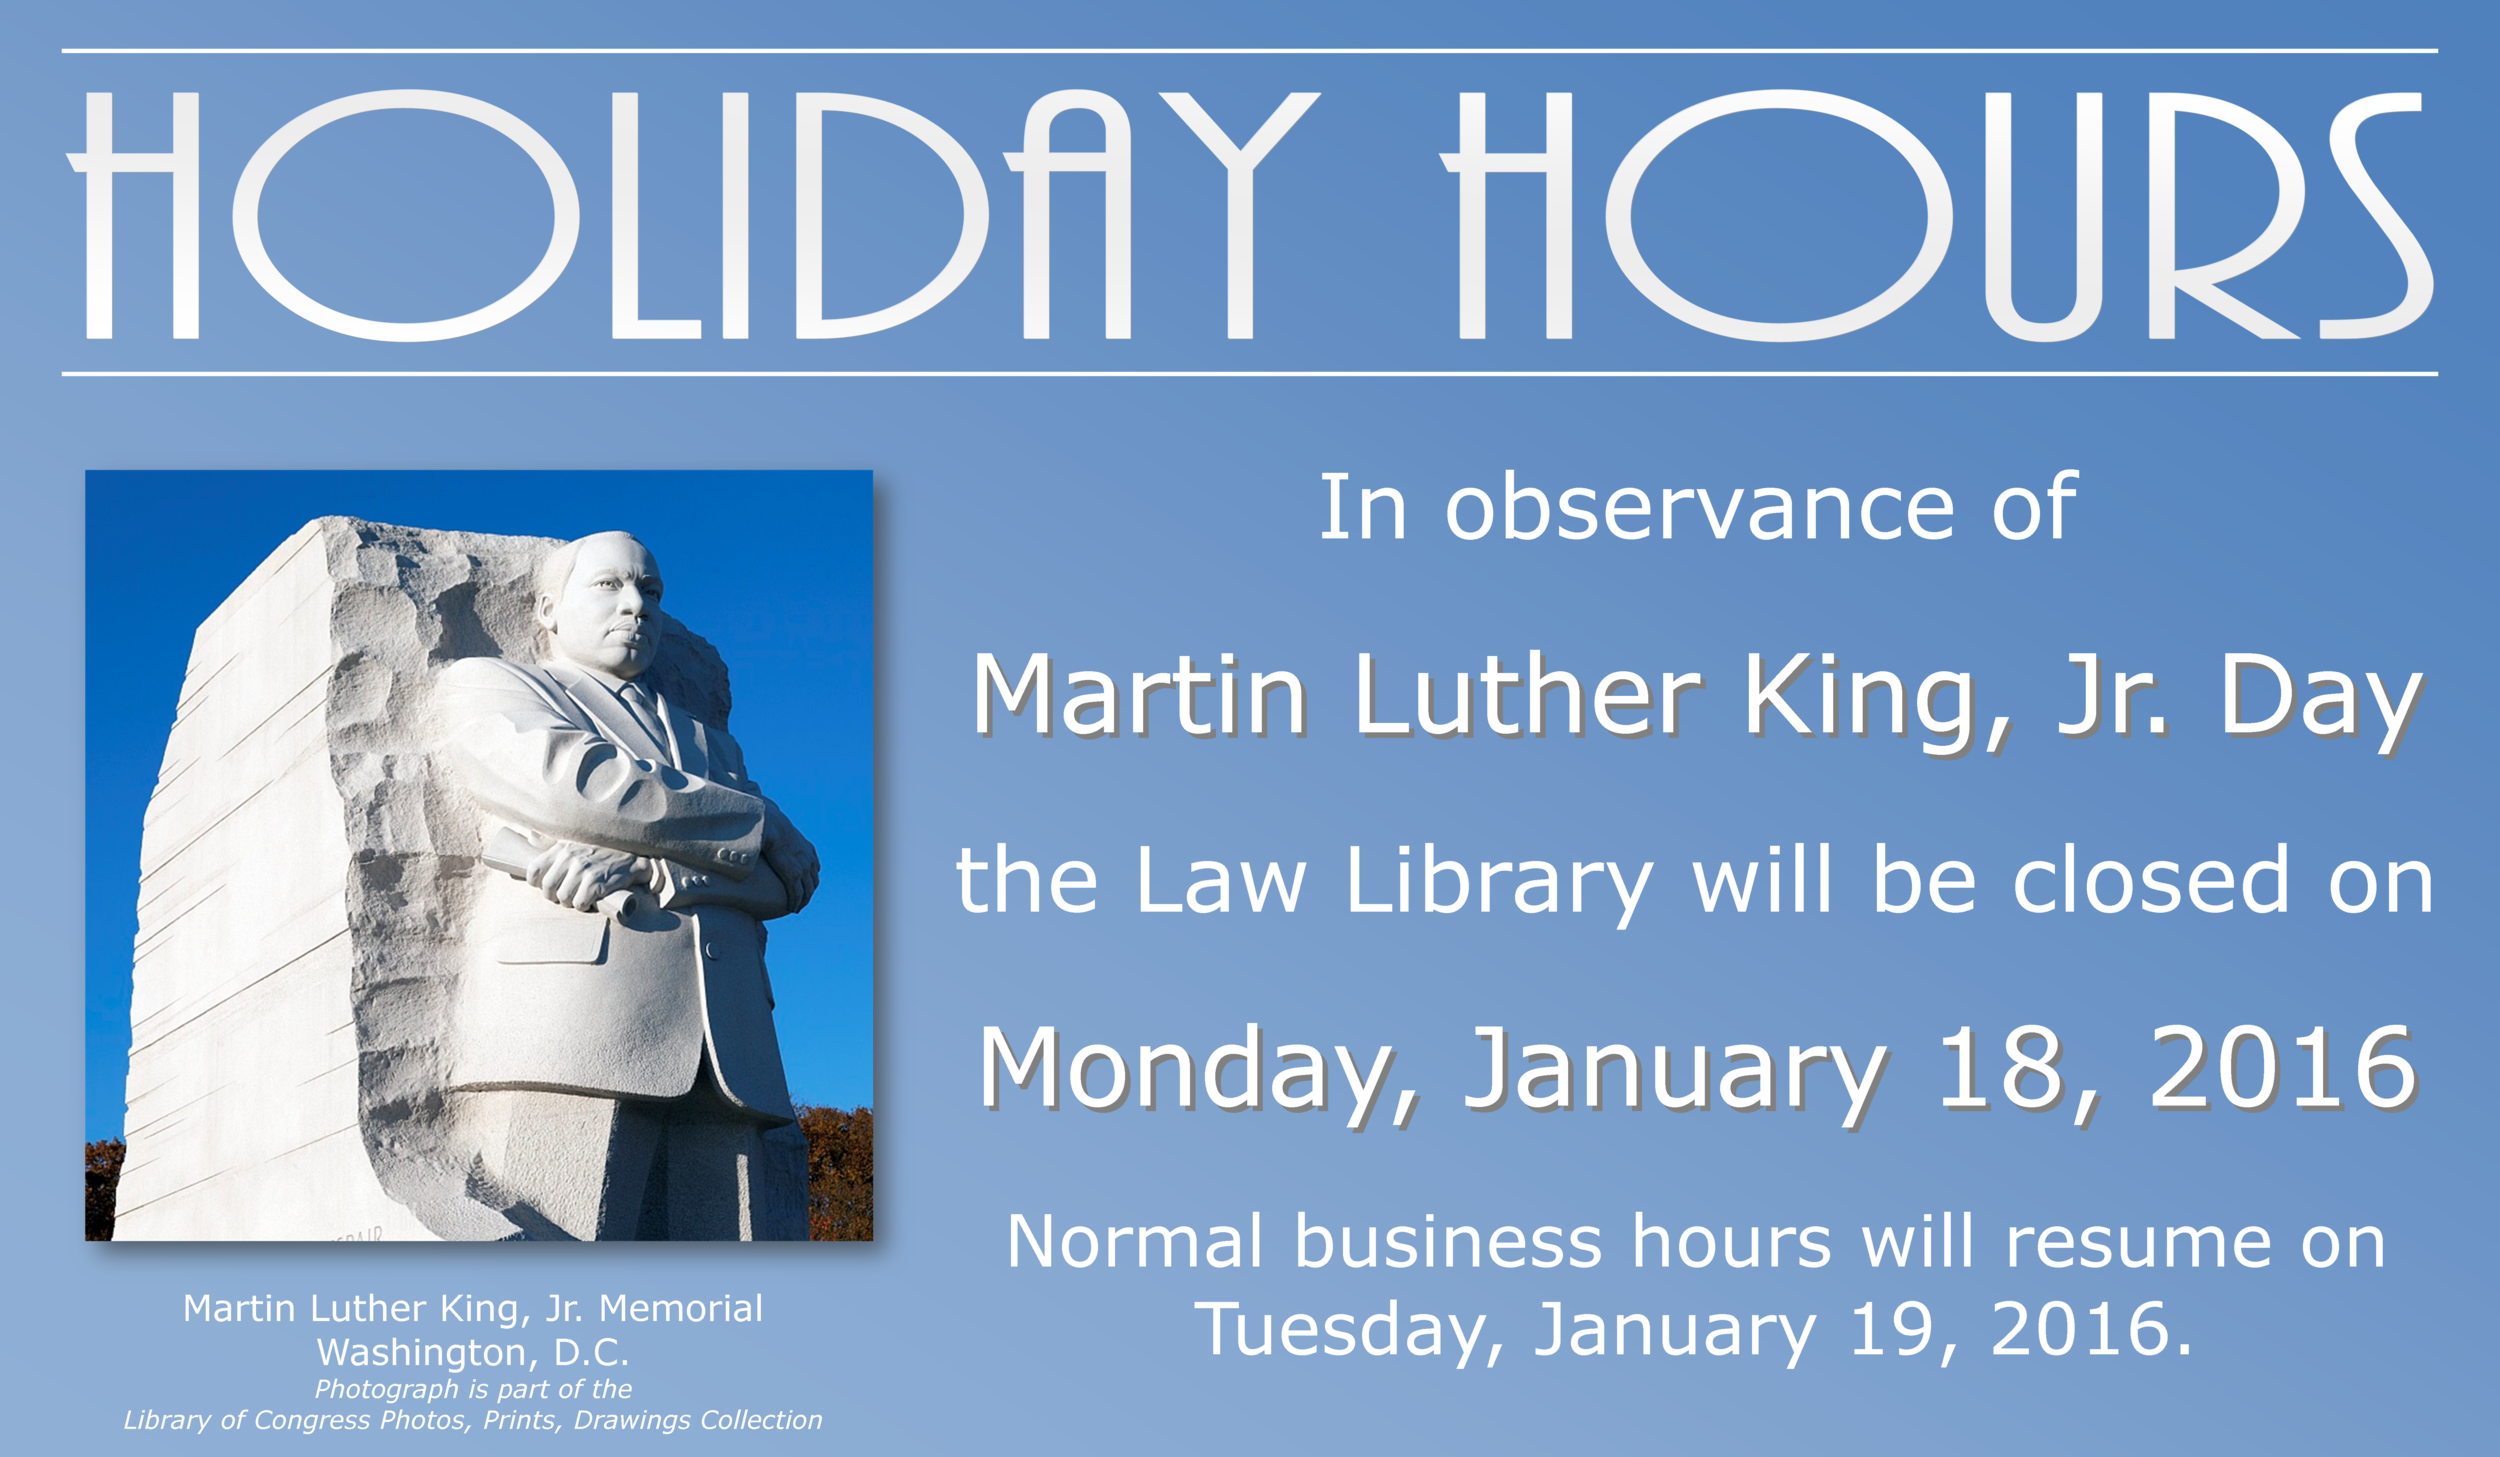 The Law Library will be closed on Martin Luther King, Jr. Day, January 19, 2016.